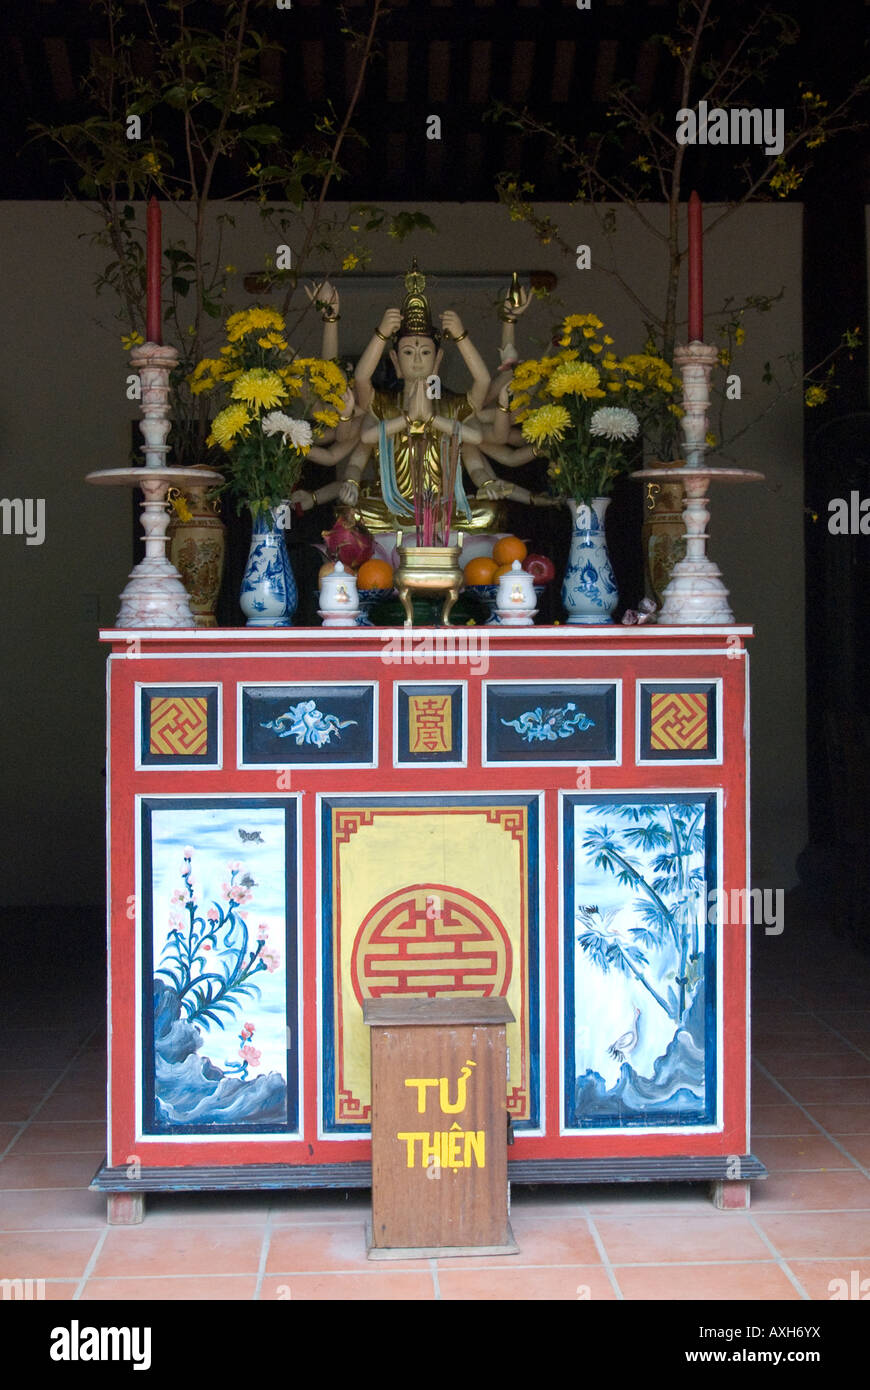 Altar in Buddhist temple Thuy Son Marble Mountains Danang - Stock Image